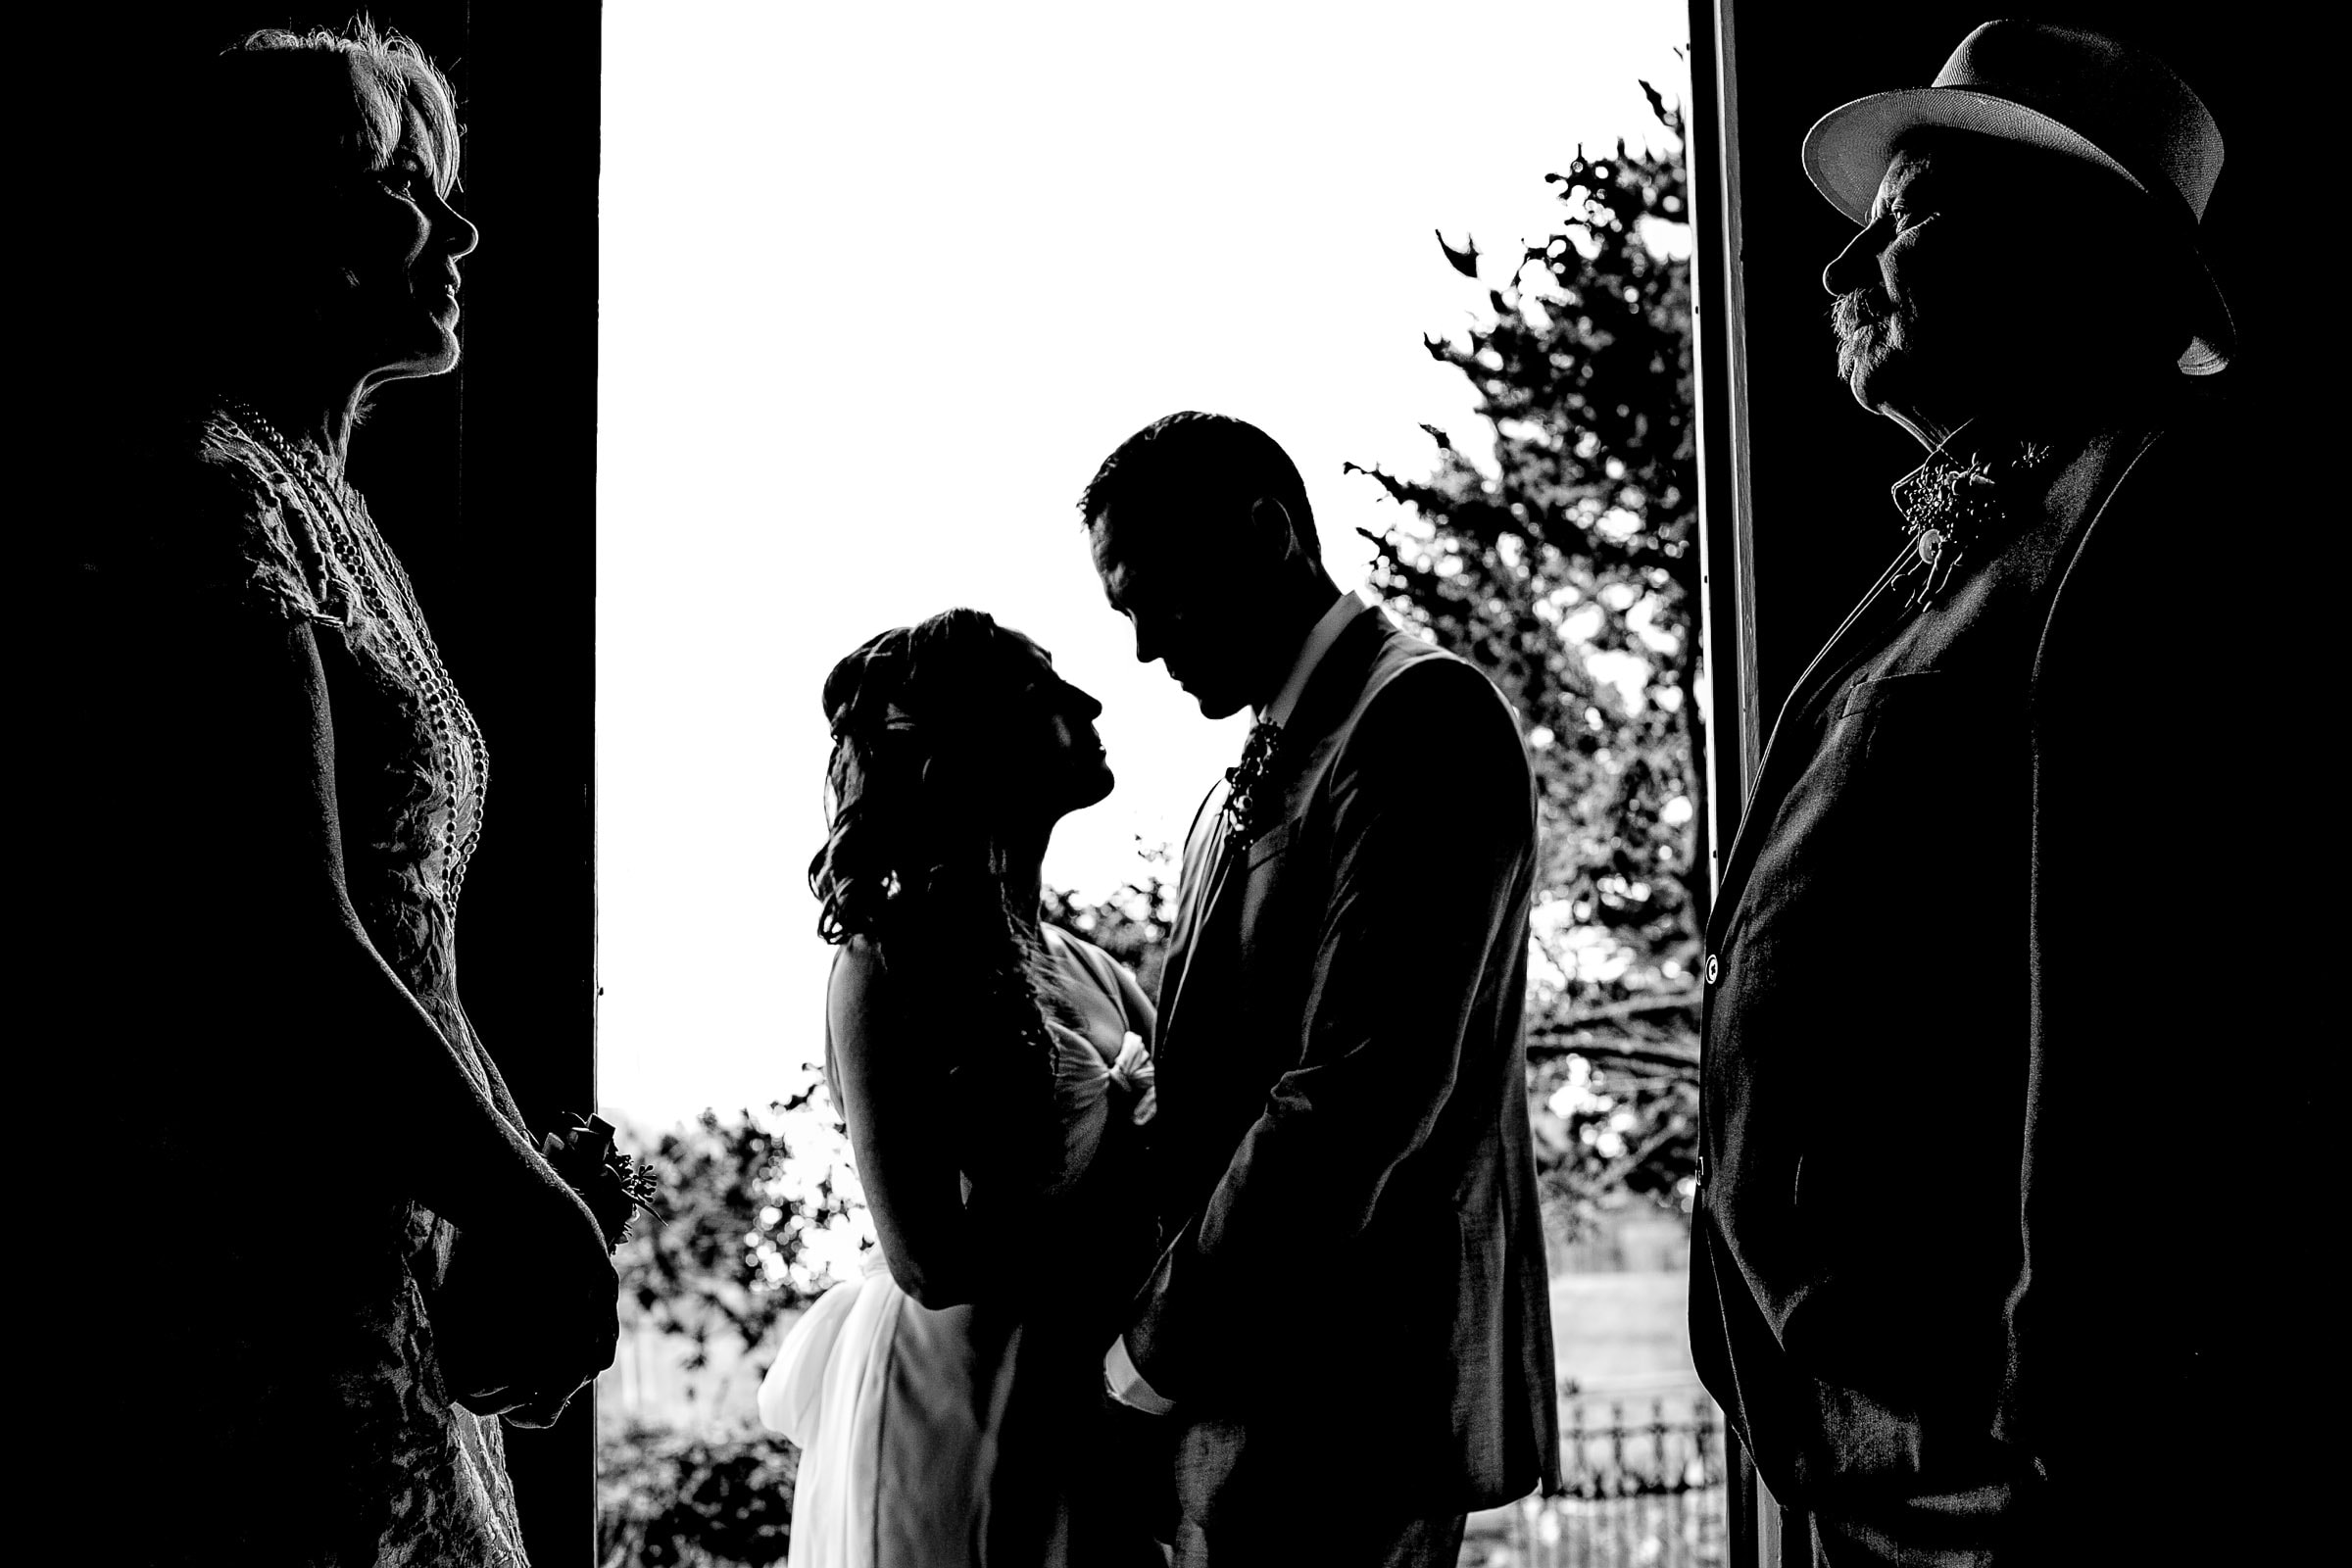 A beautiful photo of a bride and groom silhouetted with parents faces in a doorway just moments before their Mendocino Coast wedding at Spring Ranch